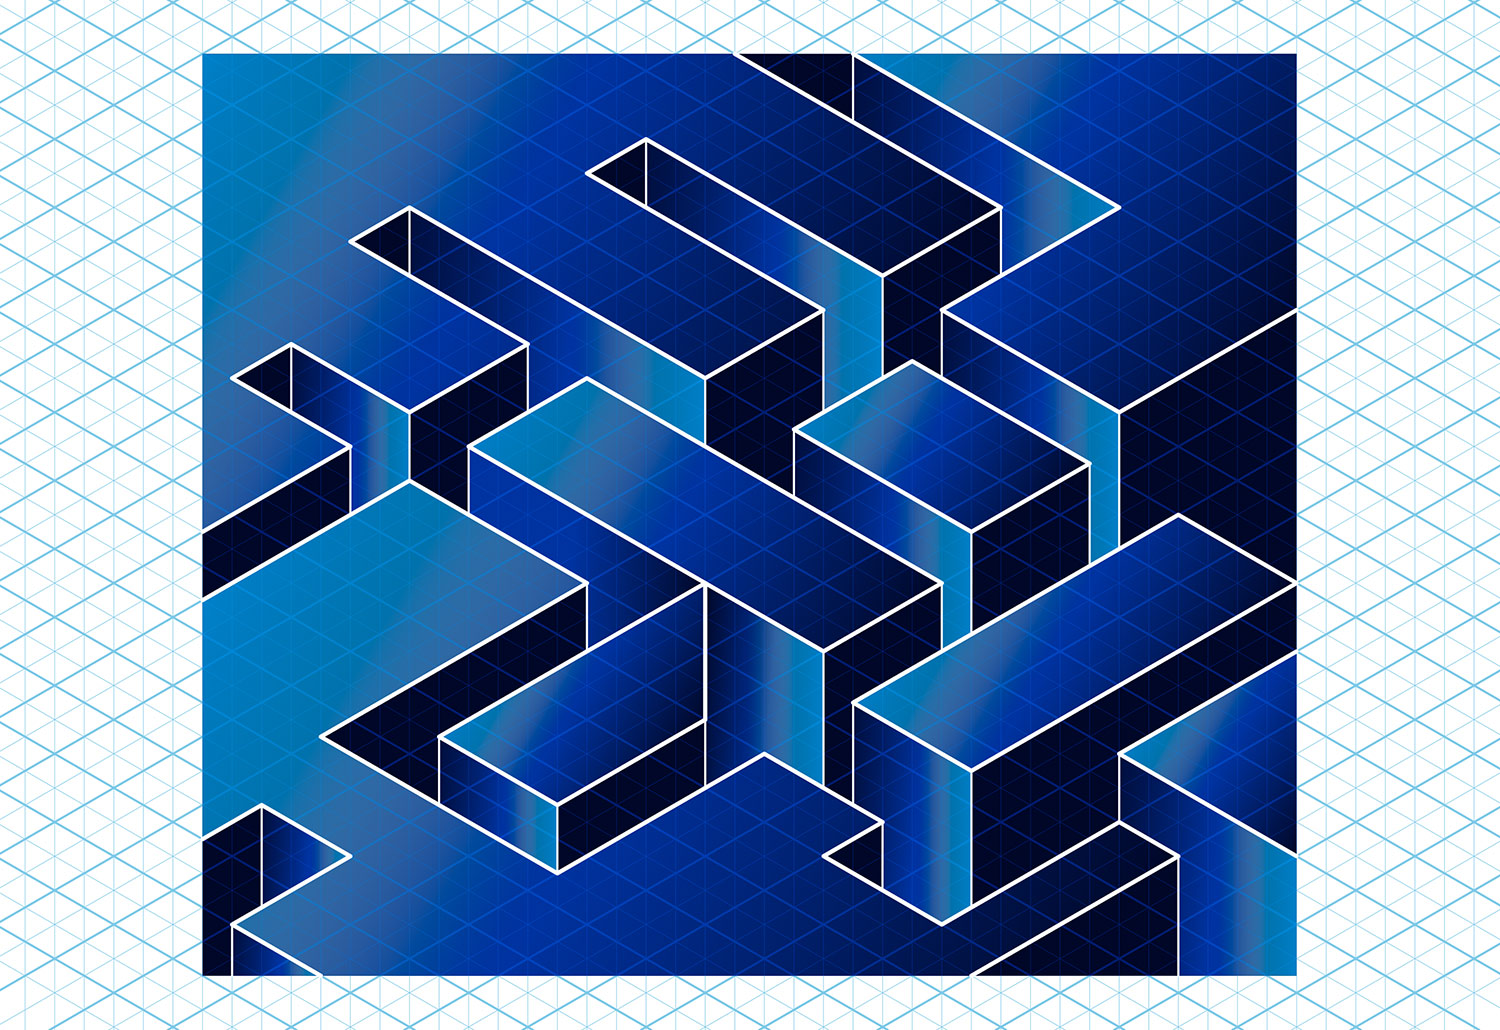 Isometric drawing. Isometric grid design, Altbank isometric logo.